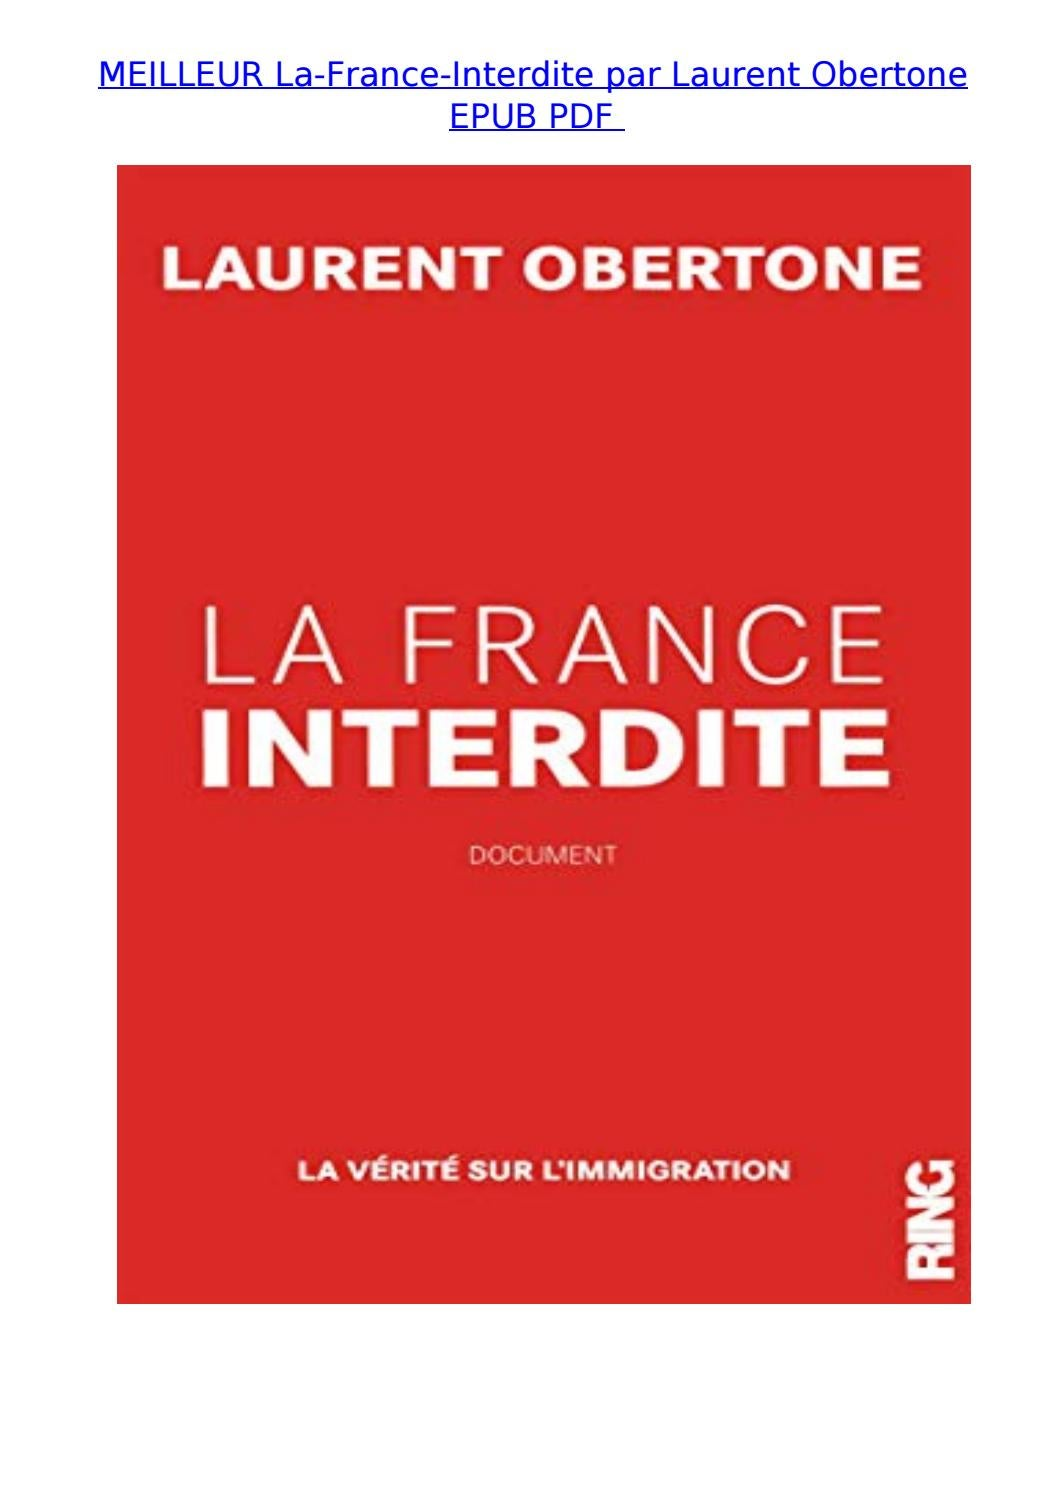 Laurent Obertone La France Interdite : laurent, obertone, france, interdite, Meilleur, France, Interdite, Laurent, Obertone, Raymond.mitchell, Issuu